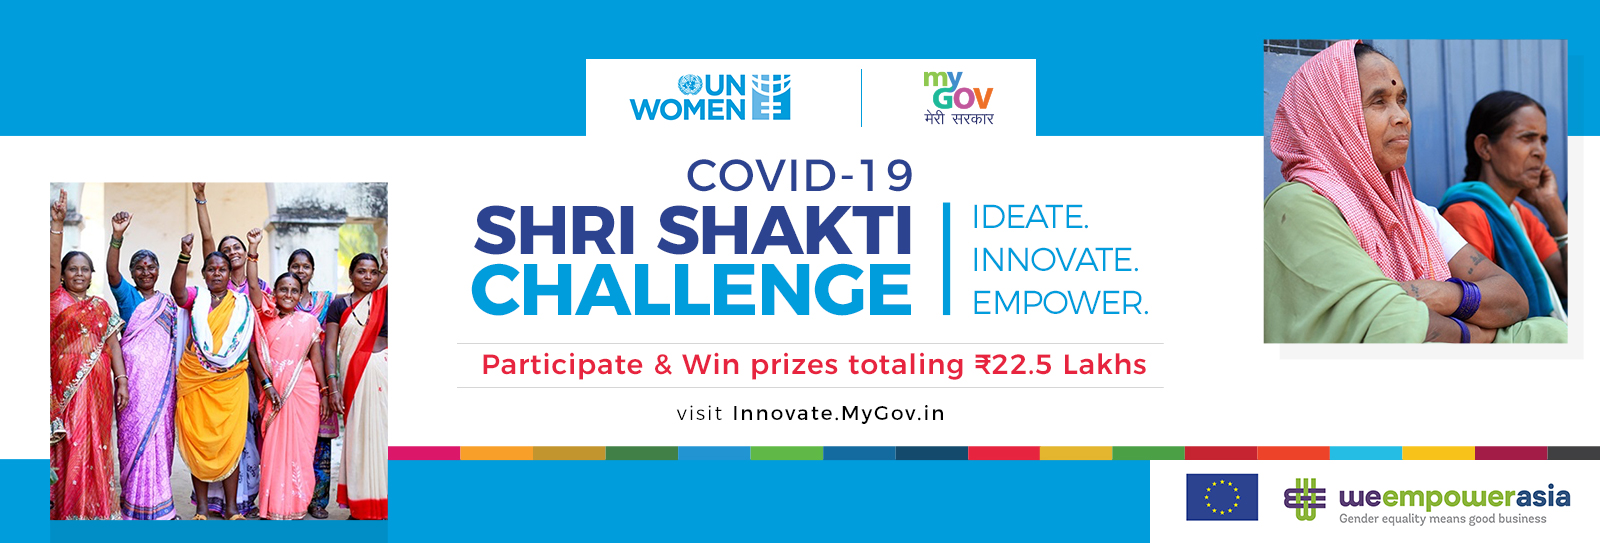 6 Women Led Startups Won COVID-19 Shri Shakti Challenge by MyGov in Collaboration with UN Women